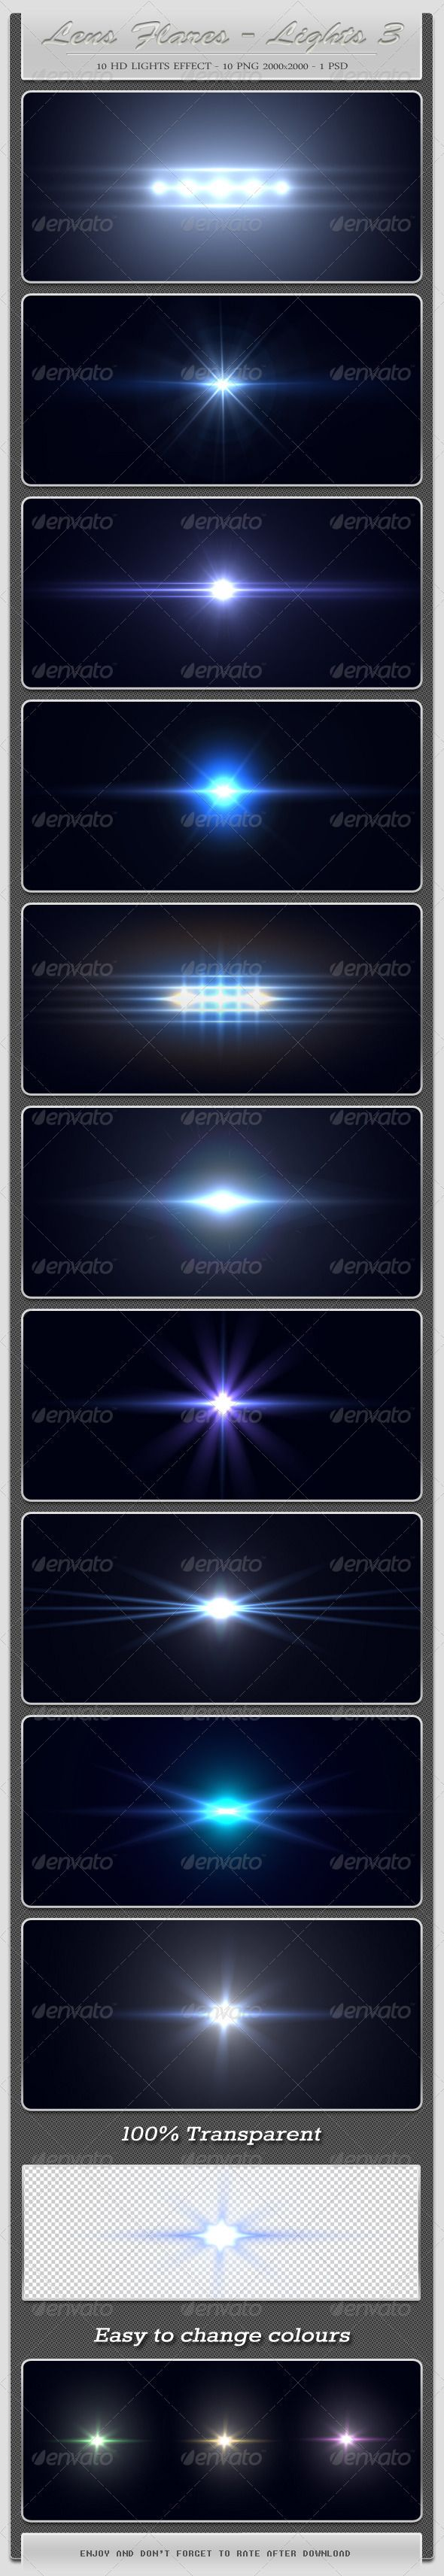 10 HD Lens Flares - Light Effects 3  #GraphicRiver        10 HD Lens Flares – Light Effects – The Third Part includes:   - 10 PNG files sized at 2000×2000 pixels ( 100% transparent)  - PSD file   Can be added to: text, images, logos, flyers, etc.     	         Created: 9August12 GraphicsFilesIncluded: PhotoshopPSD #TransparentPNG Layered: Yes MinimumAdobeCSVersion: CS PixelDimensions: 2000x2000 Tags: effect #hightquality #lens #lensflares #light #lights #optical #photoshop #professional…